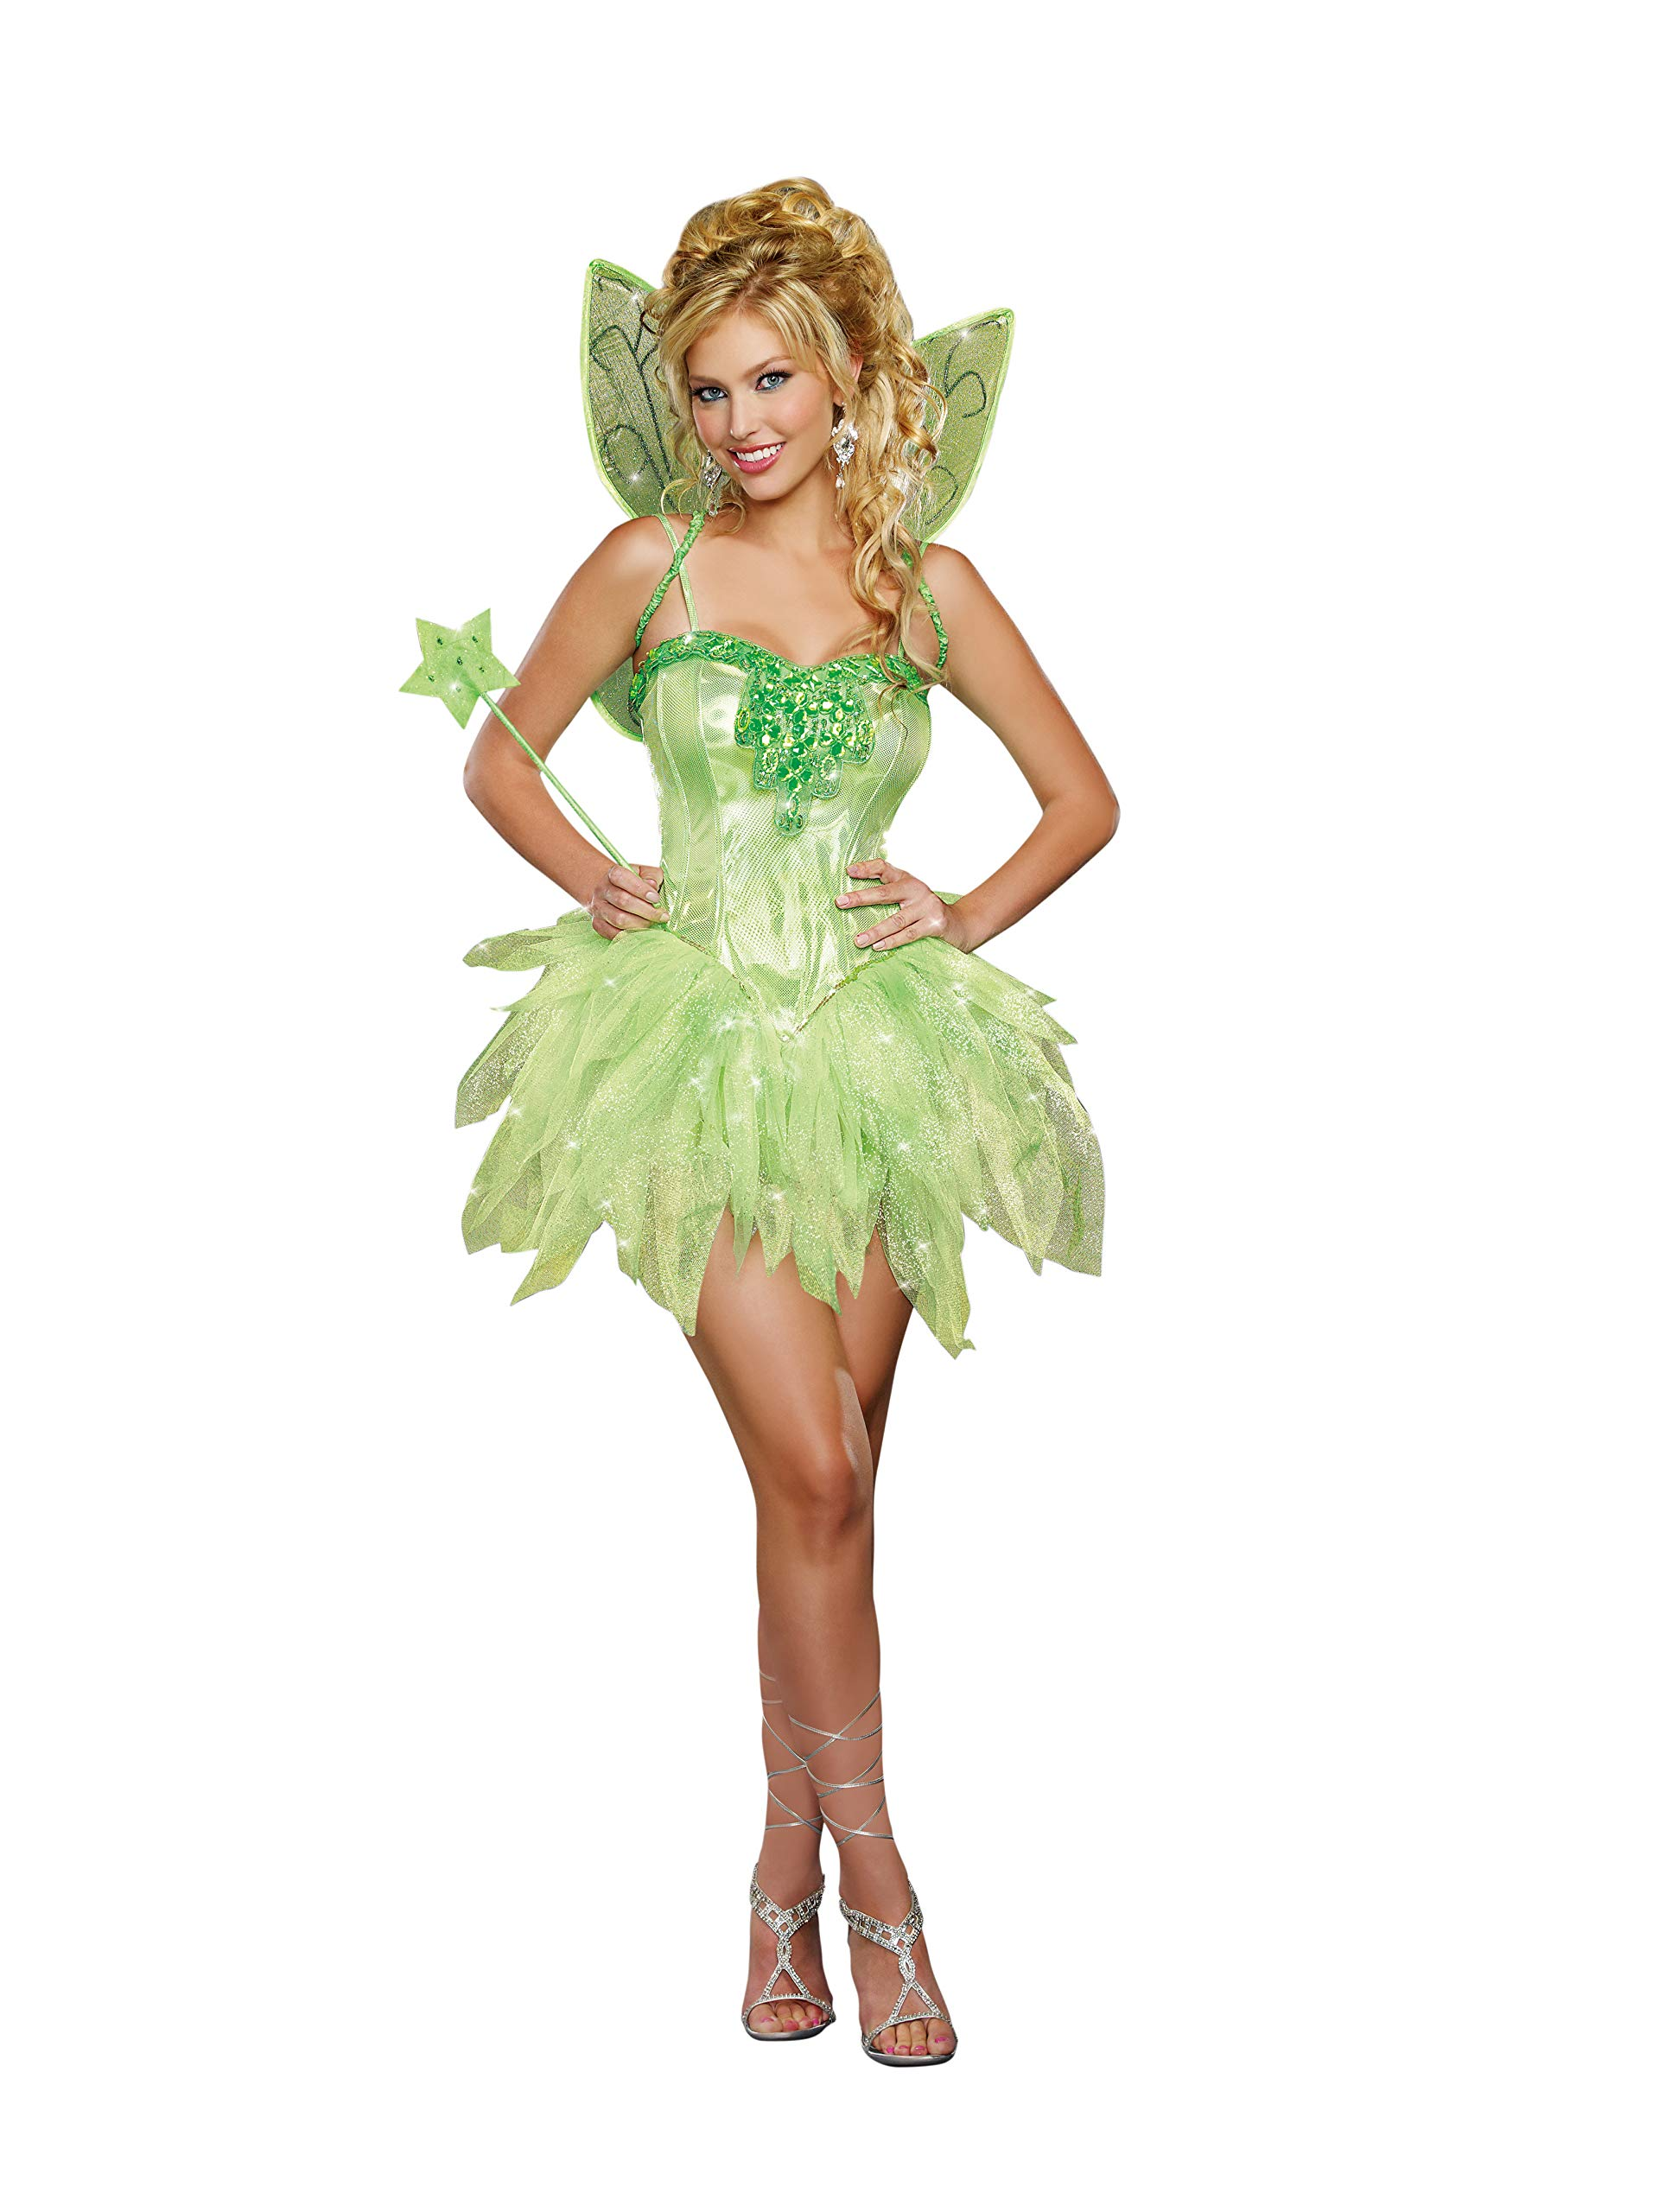 Dreamgirl Women's Fairy-Licious Costume, Green, Medium by Dreamgirl